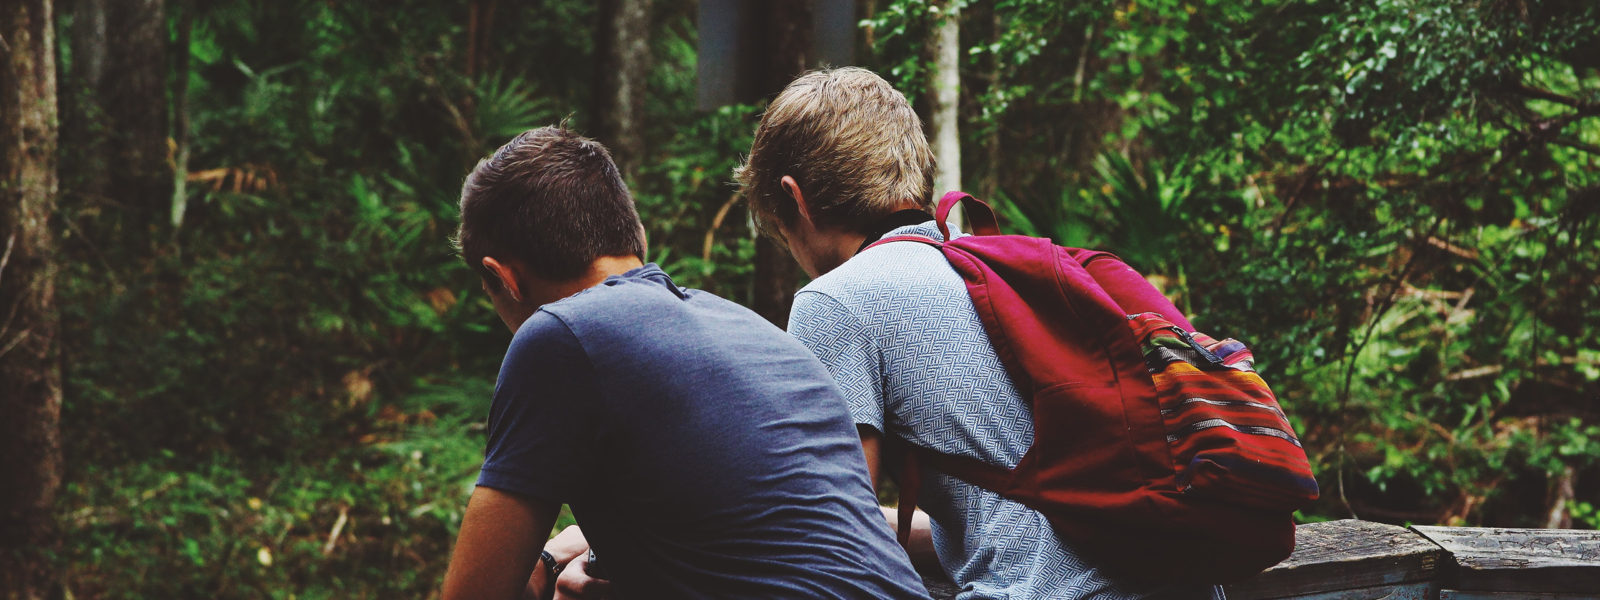 The Challenges of Friendships in Adulthood